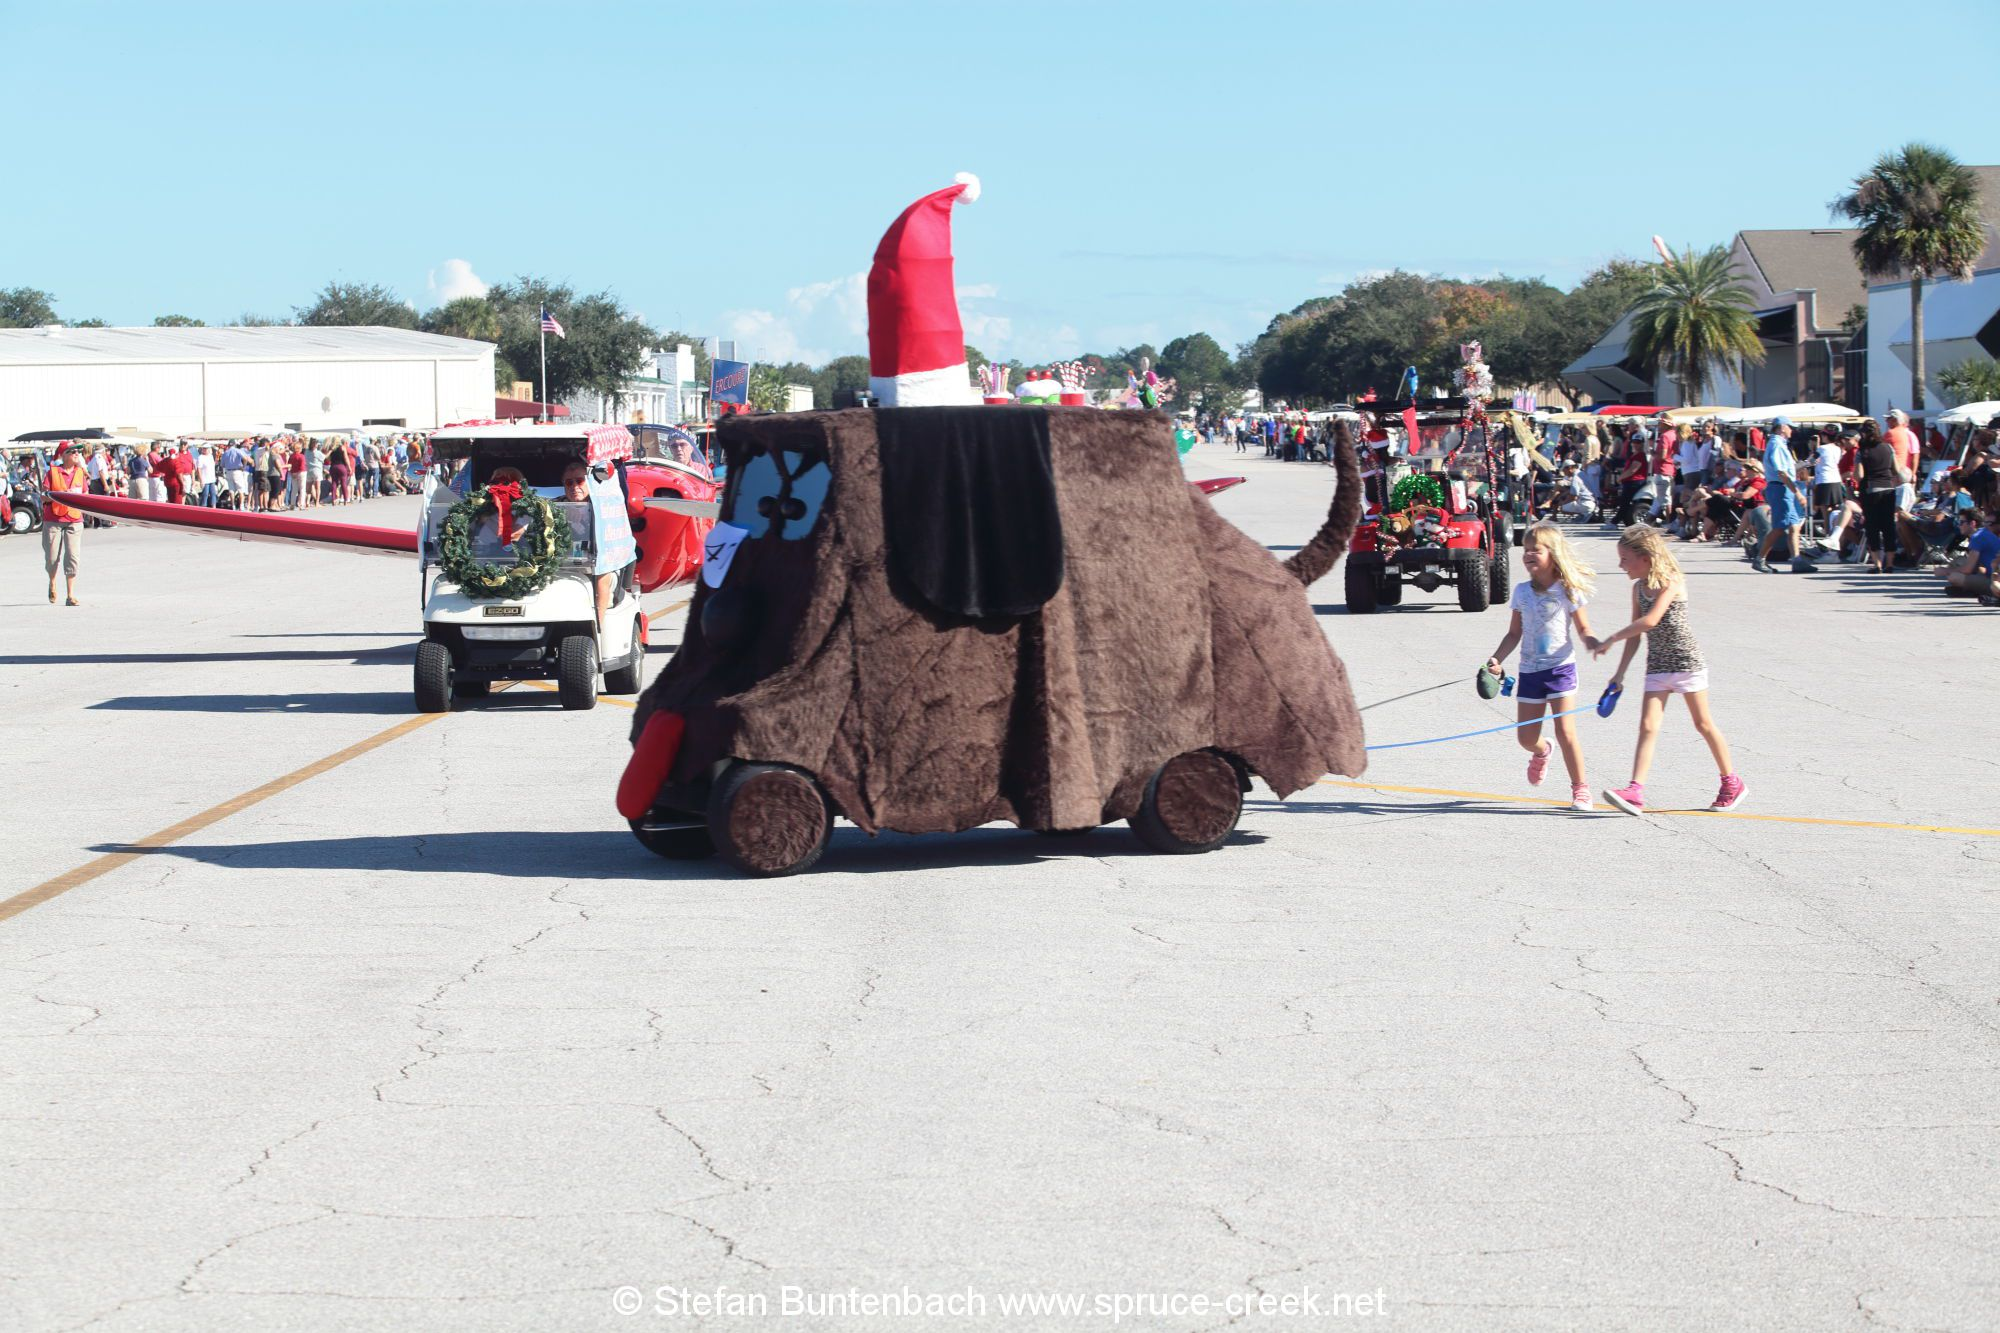 Spruce-Creek-Toyparade-2015- IMG_1519